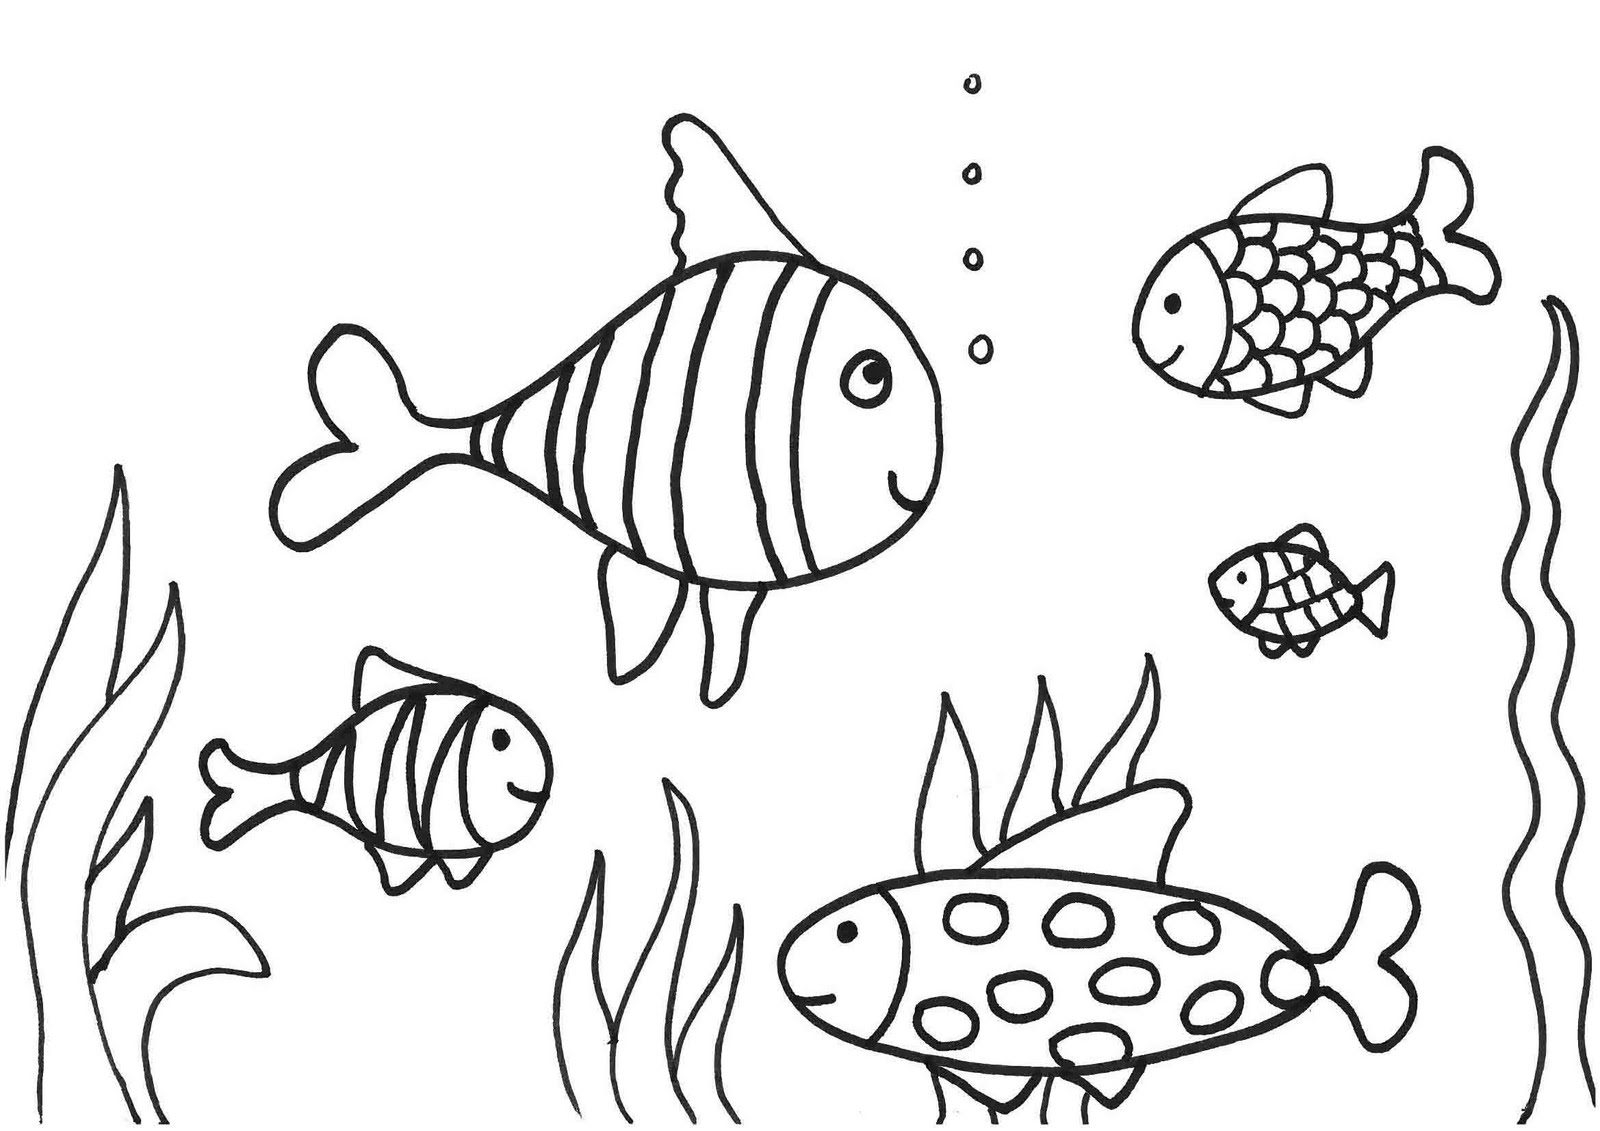 1600x1131 New Fish Colouring Picture Coloring Pages Gallery For Kids